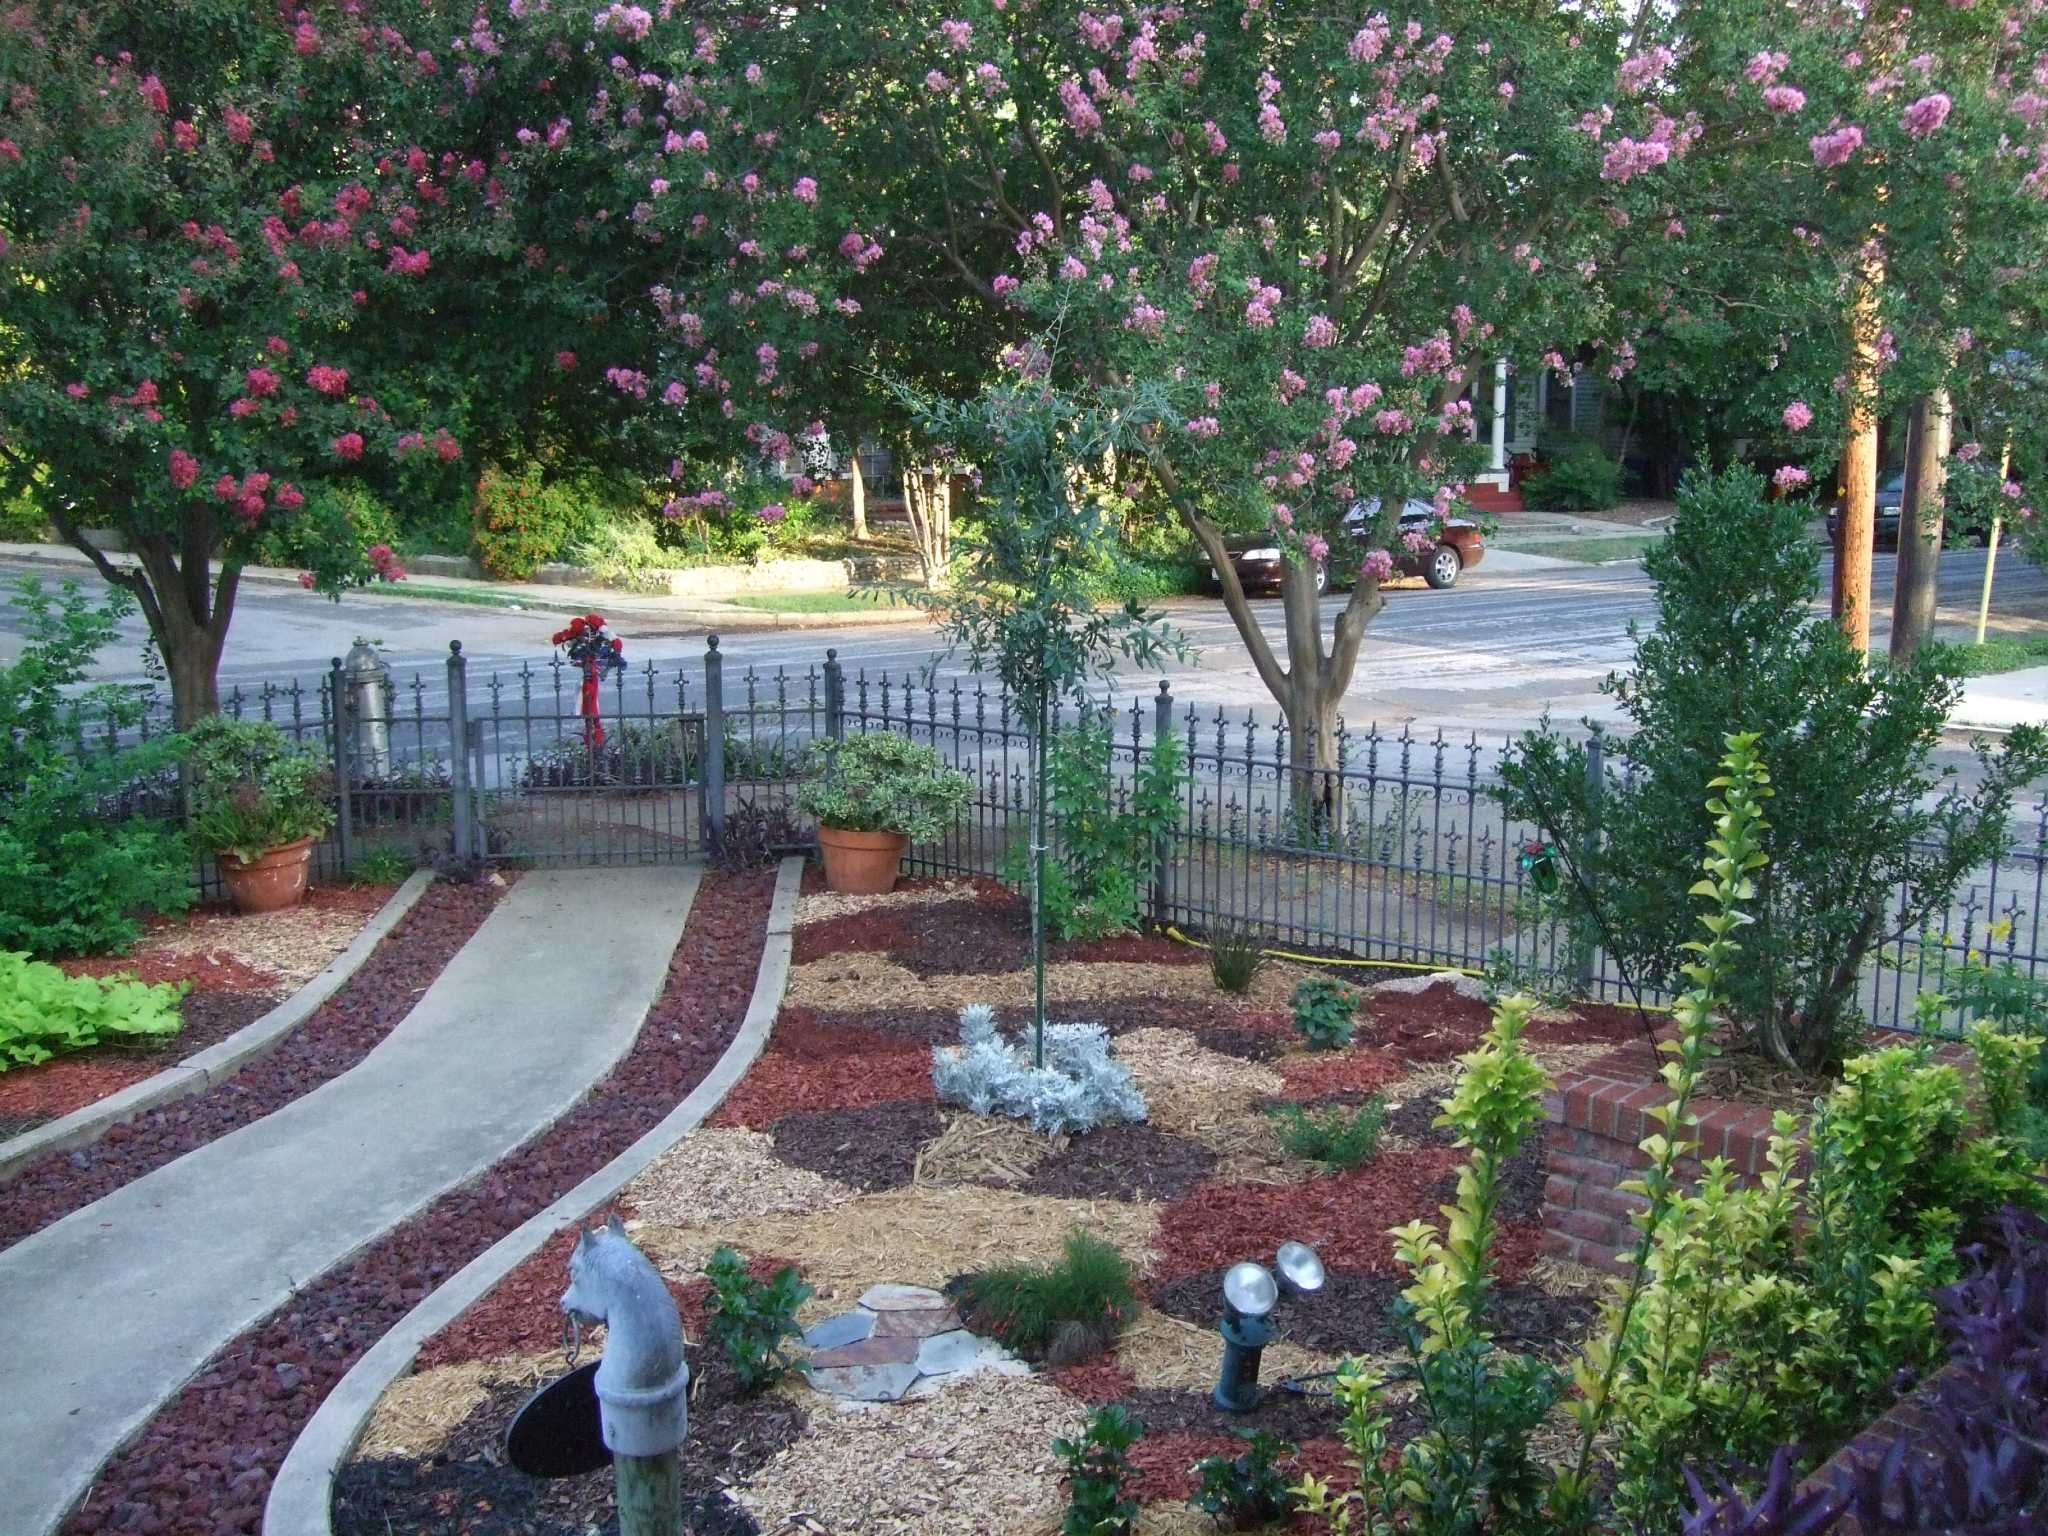 Out With The Grass In With Xeriscapes - San Antonio Express-News